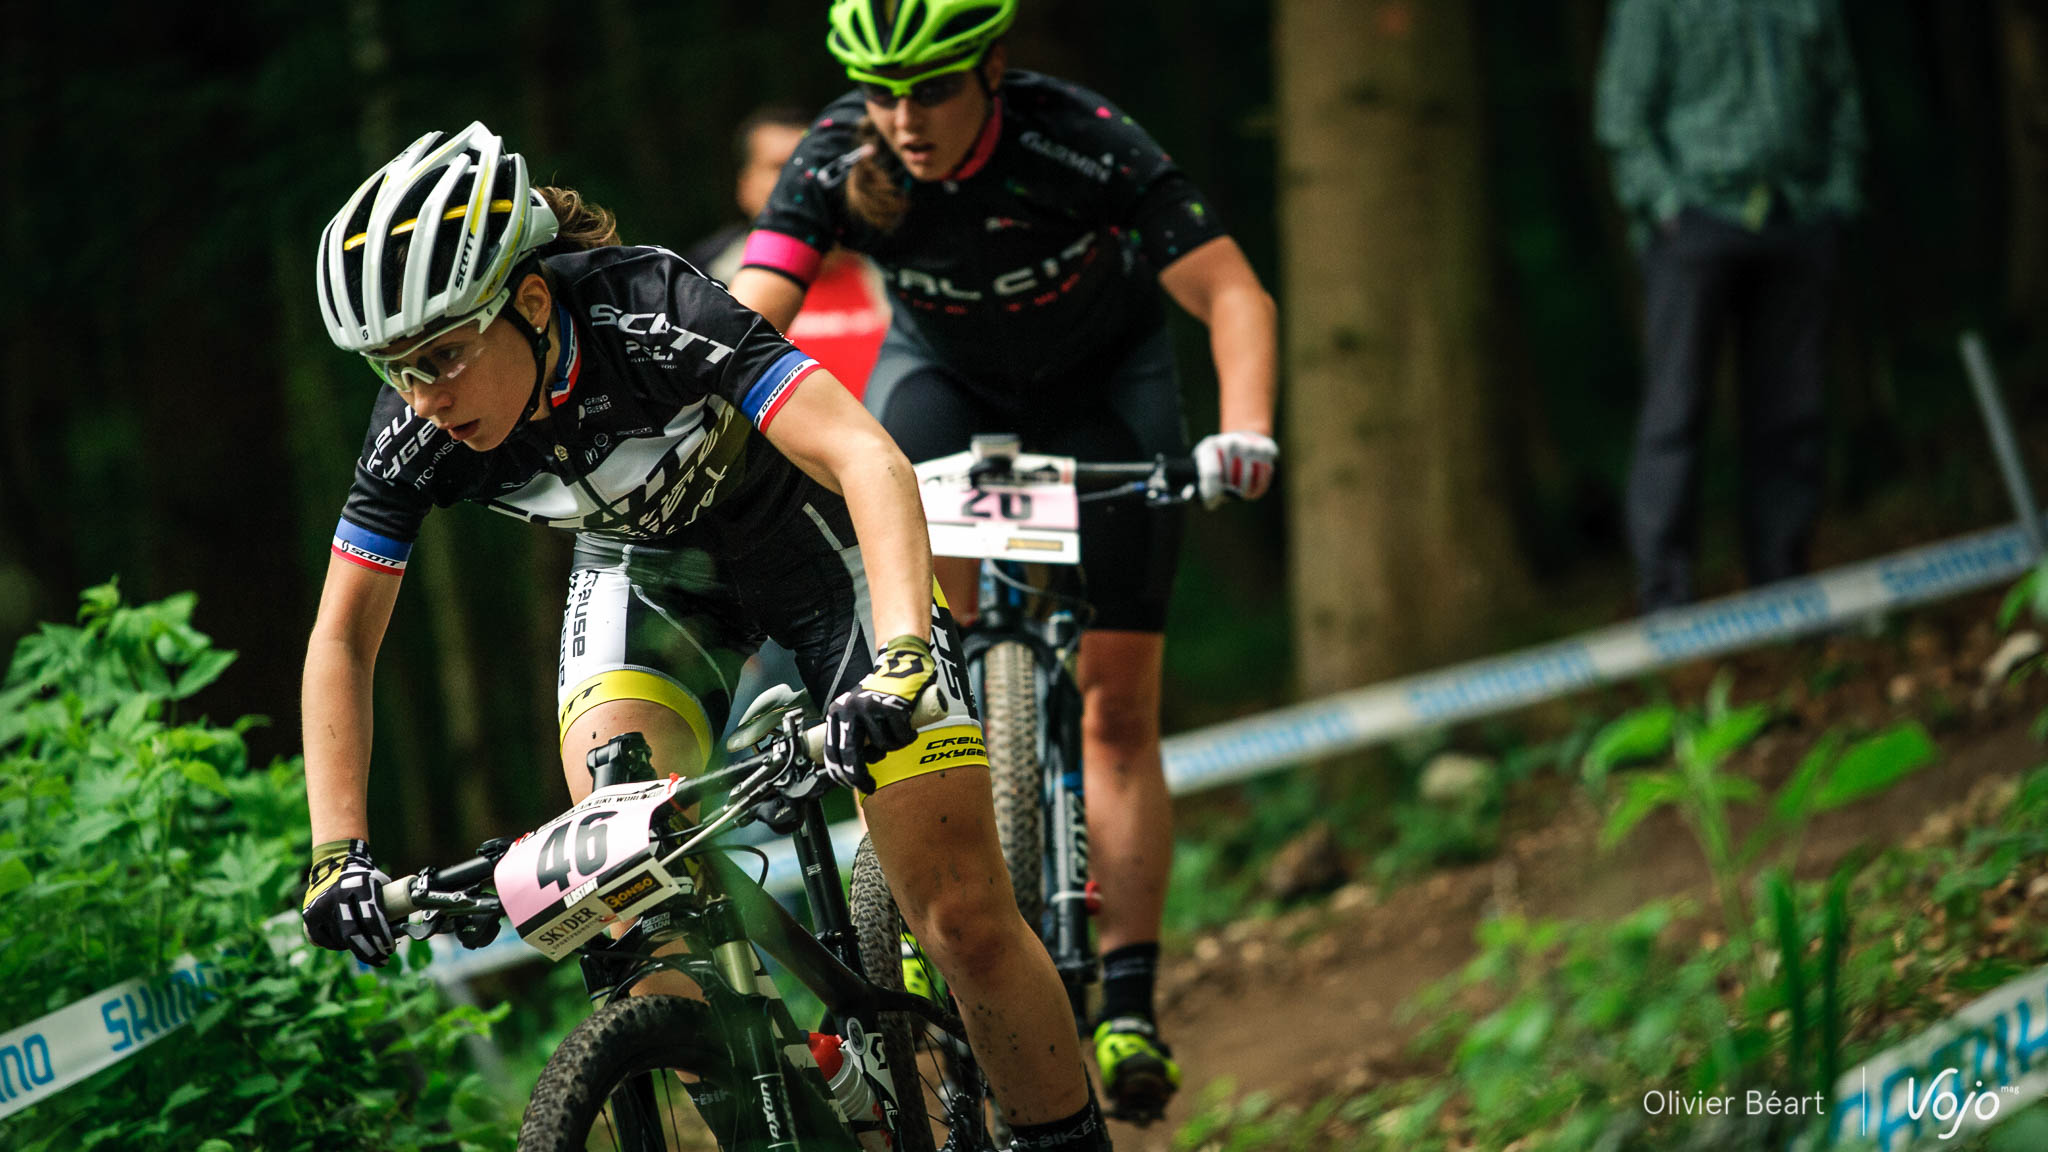 World_Cup_Albstadt_2015_Women_U23_Rissveds_Copyright_OBeart_VojoMag-1